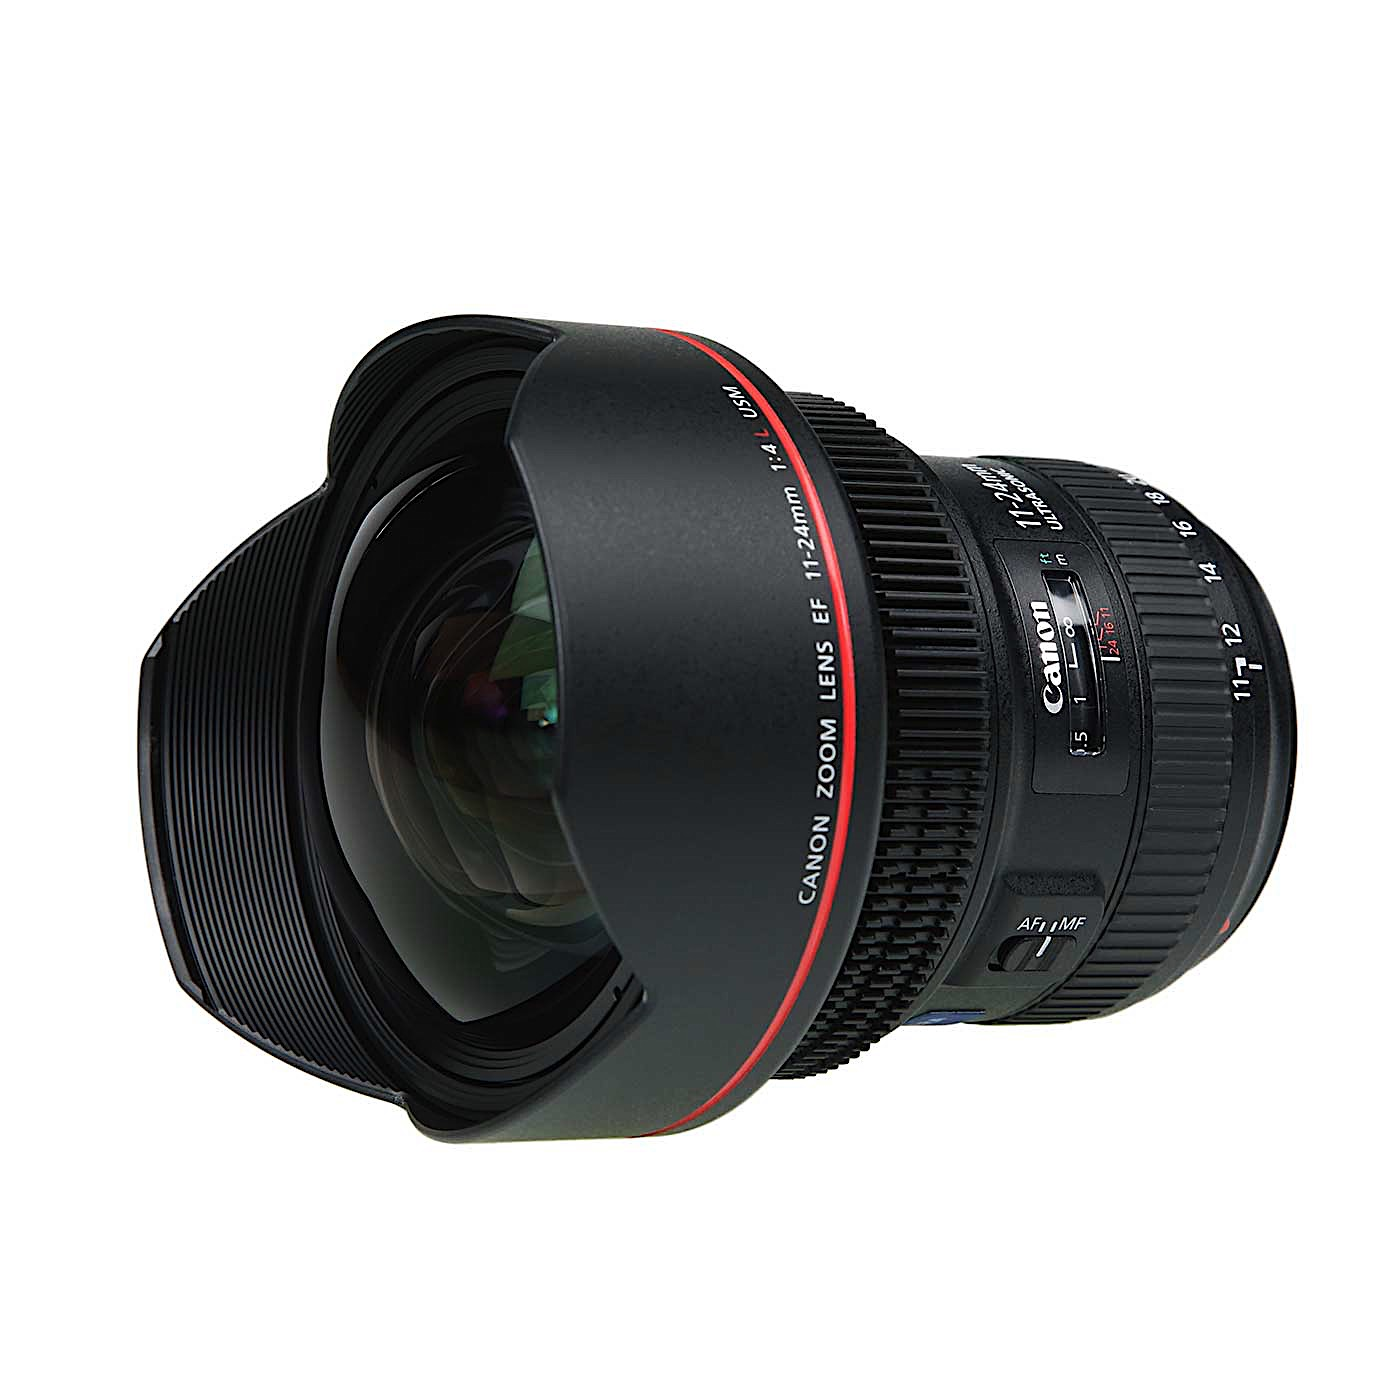 Canon EF 11-24mm Still Photo Zoom Lens